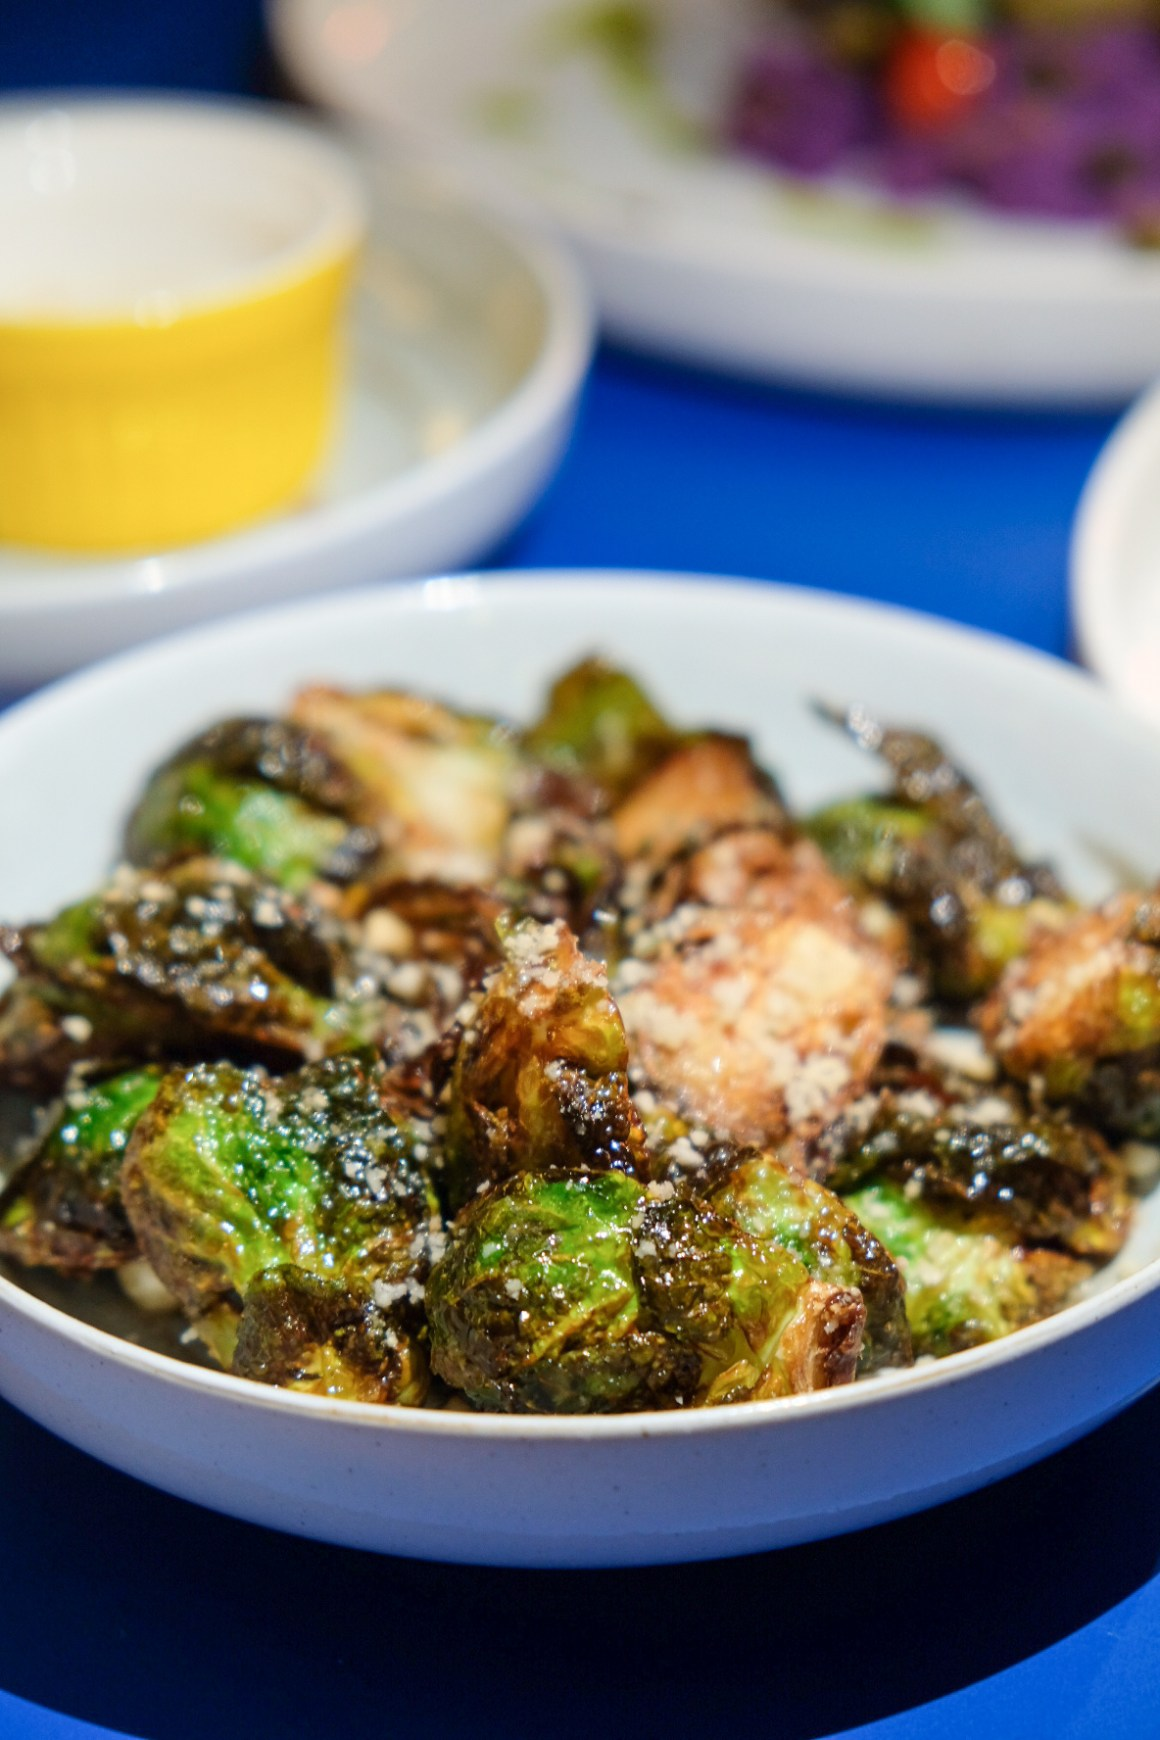 The Garden Club Serving Healthy Food At Downtown Gallery - Fried Brussels Sprouts ($9)